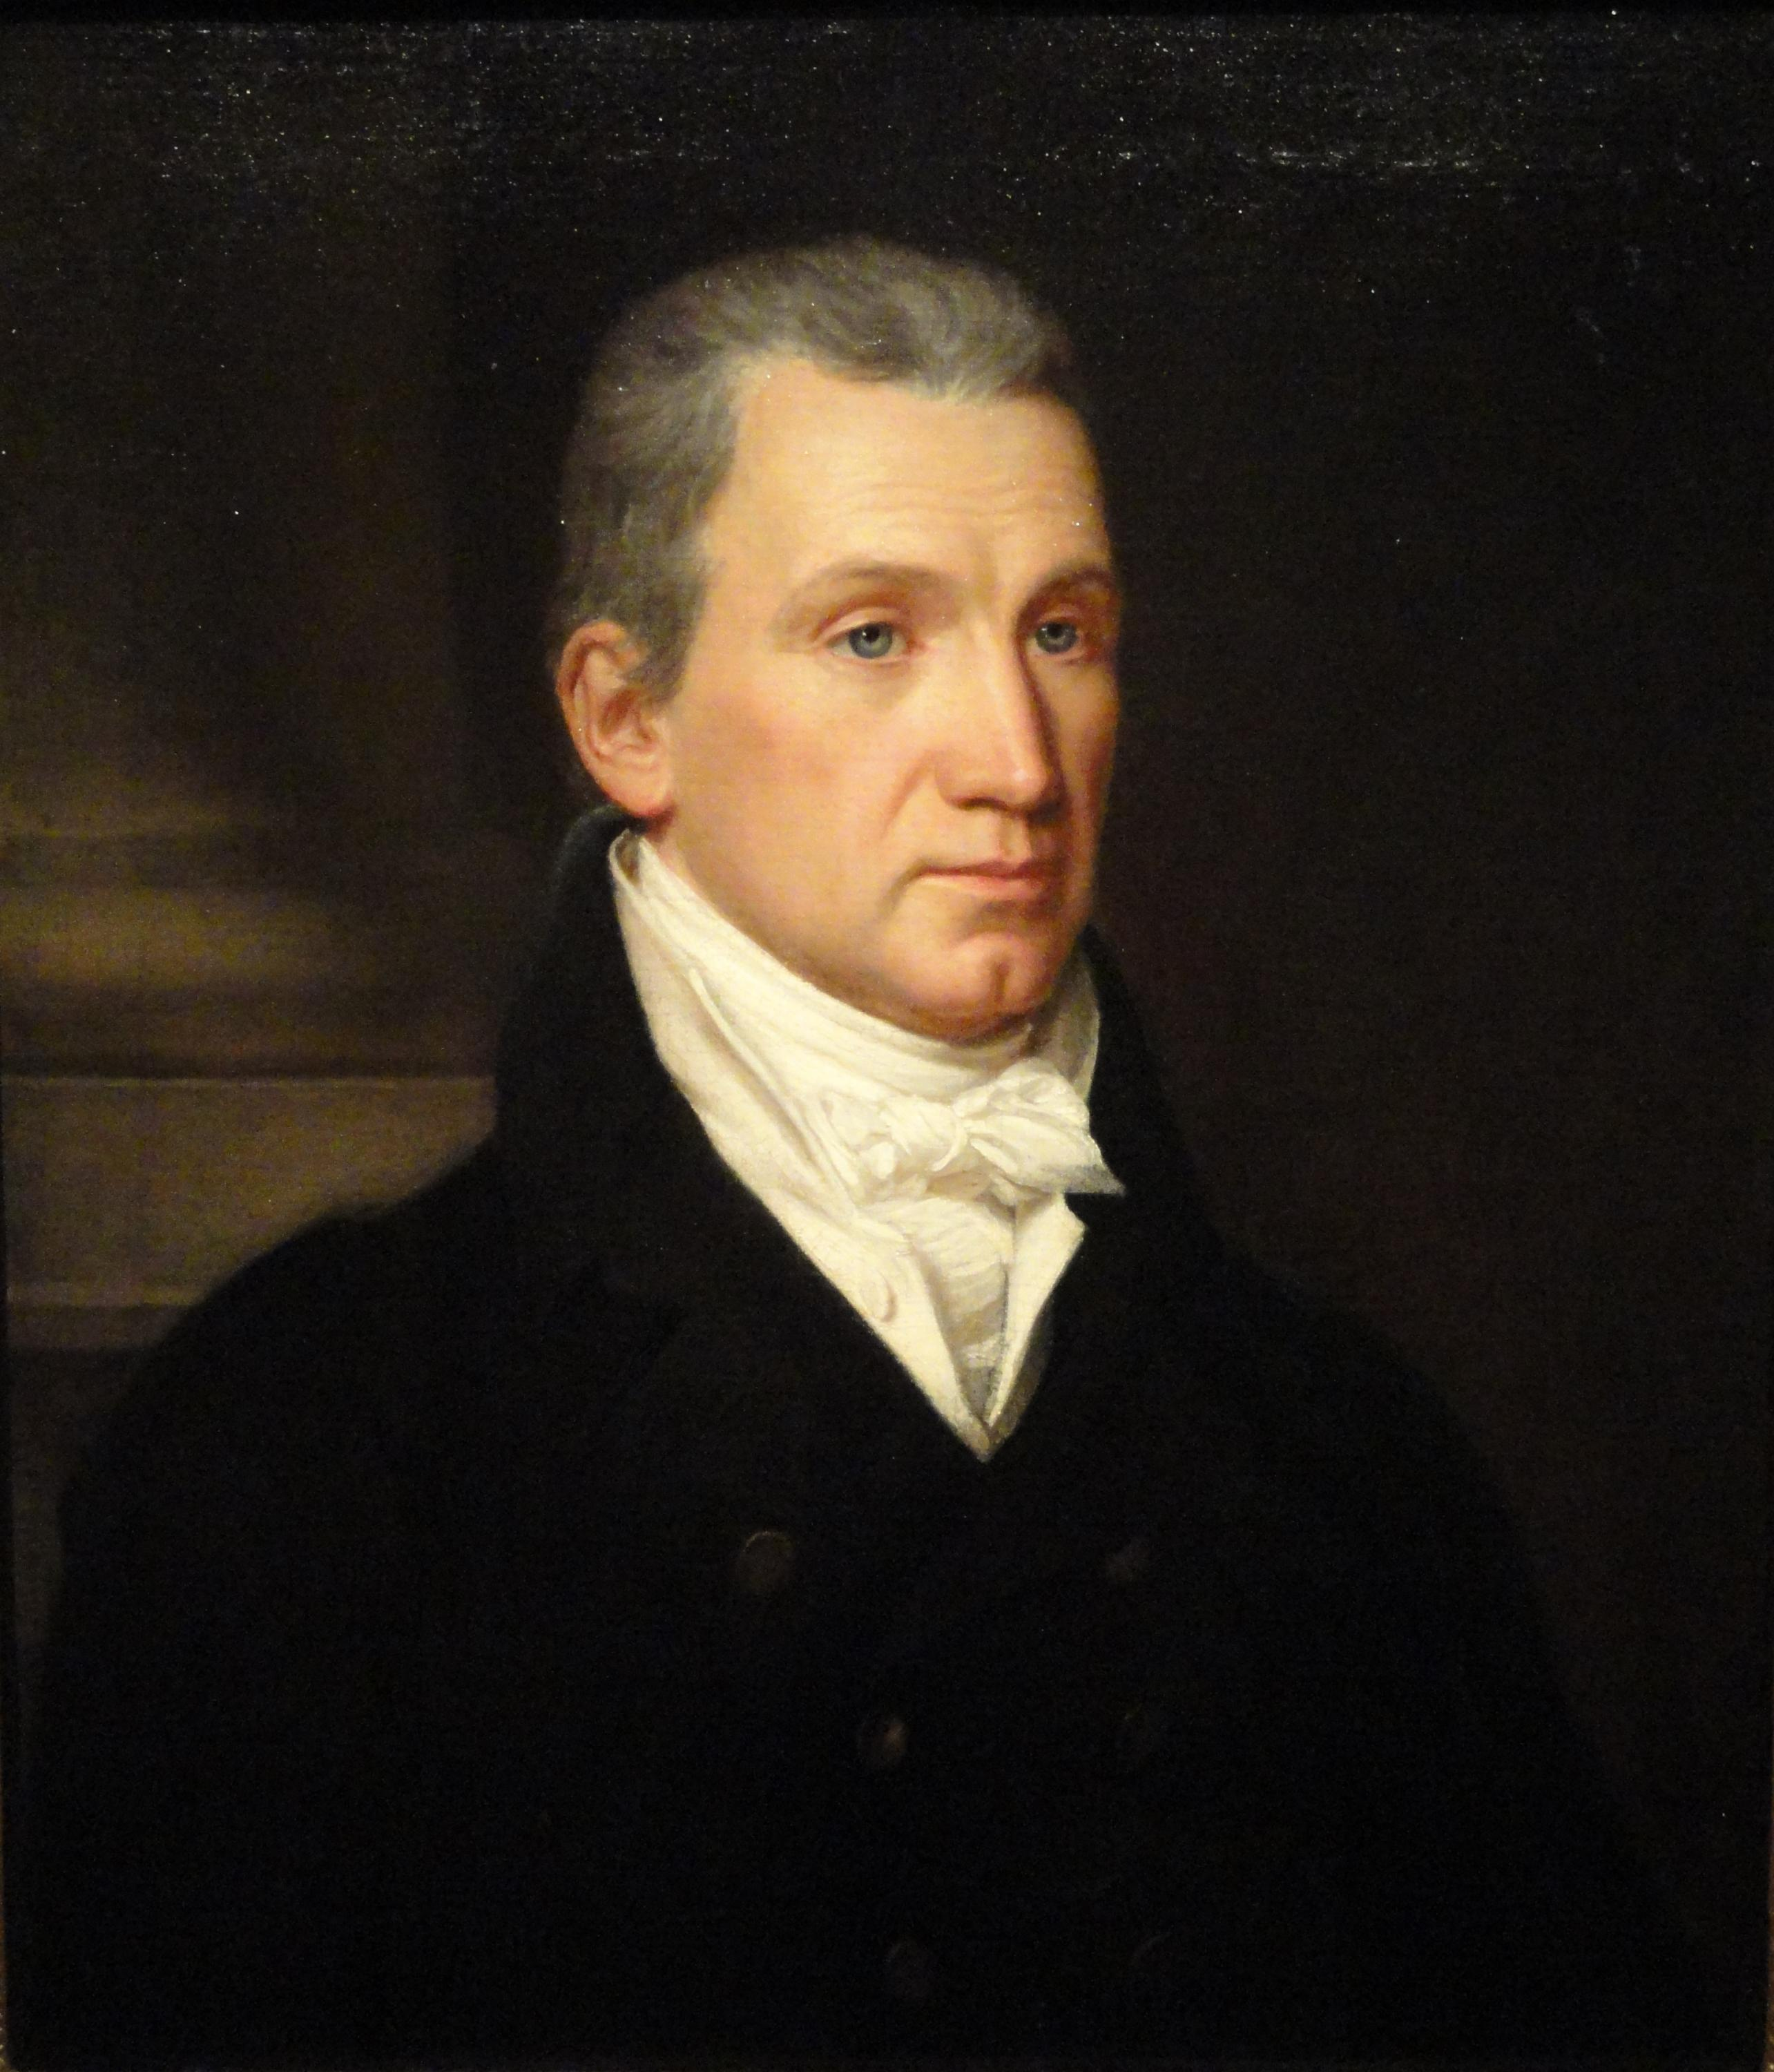 James Monroe, circa 1816 by John Vanderlyn.